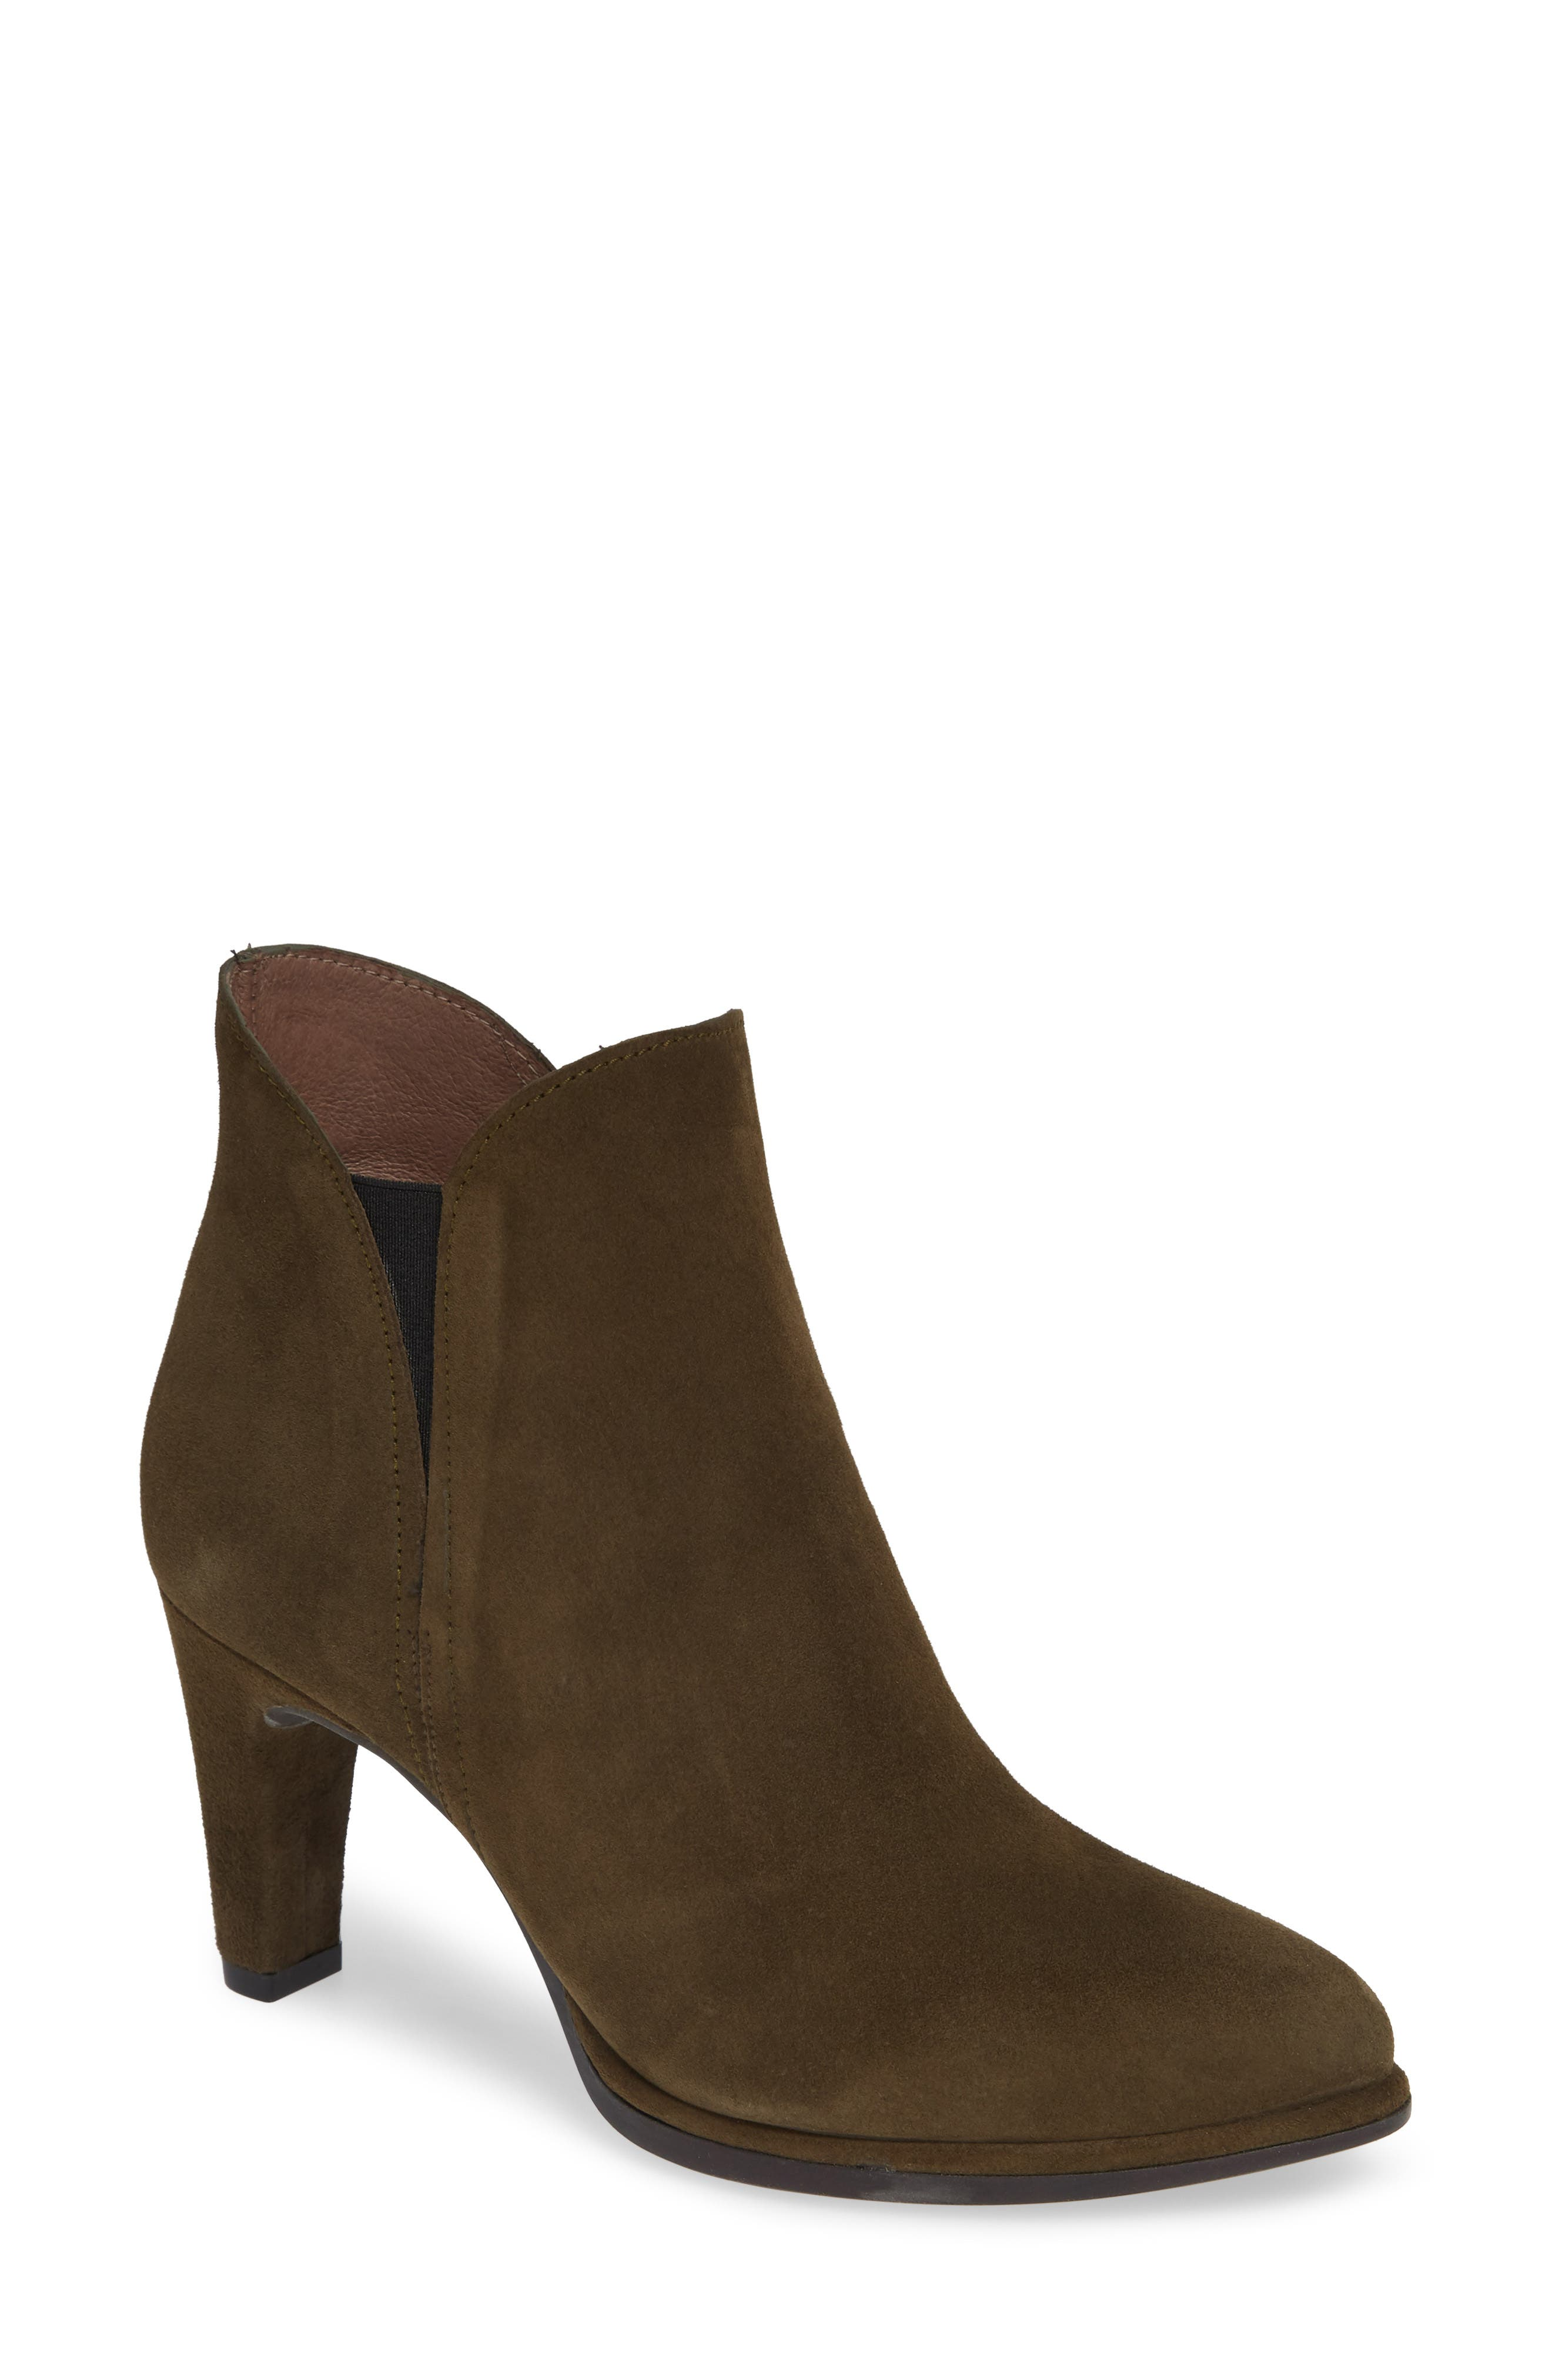 Wonders Chelsea Boot - Green